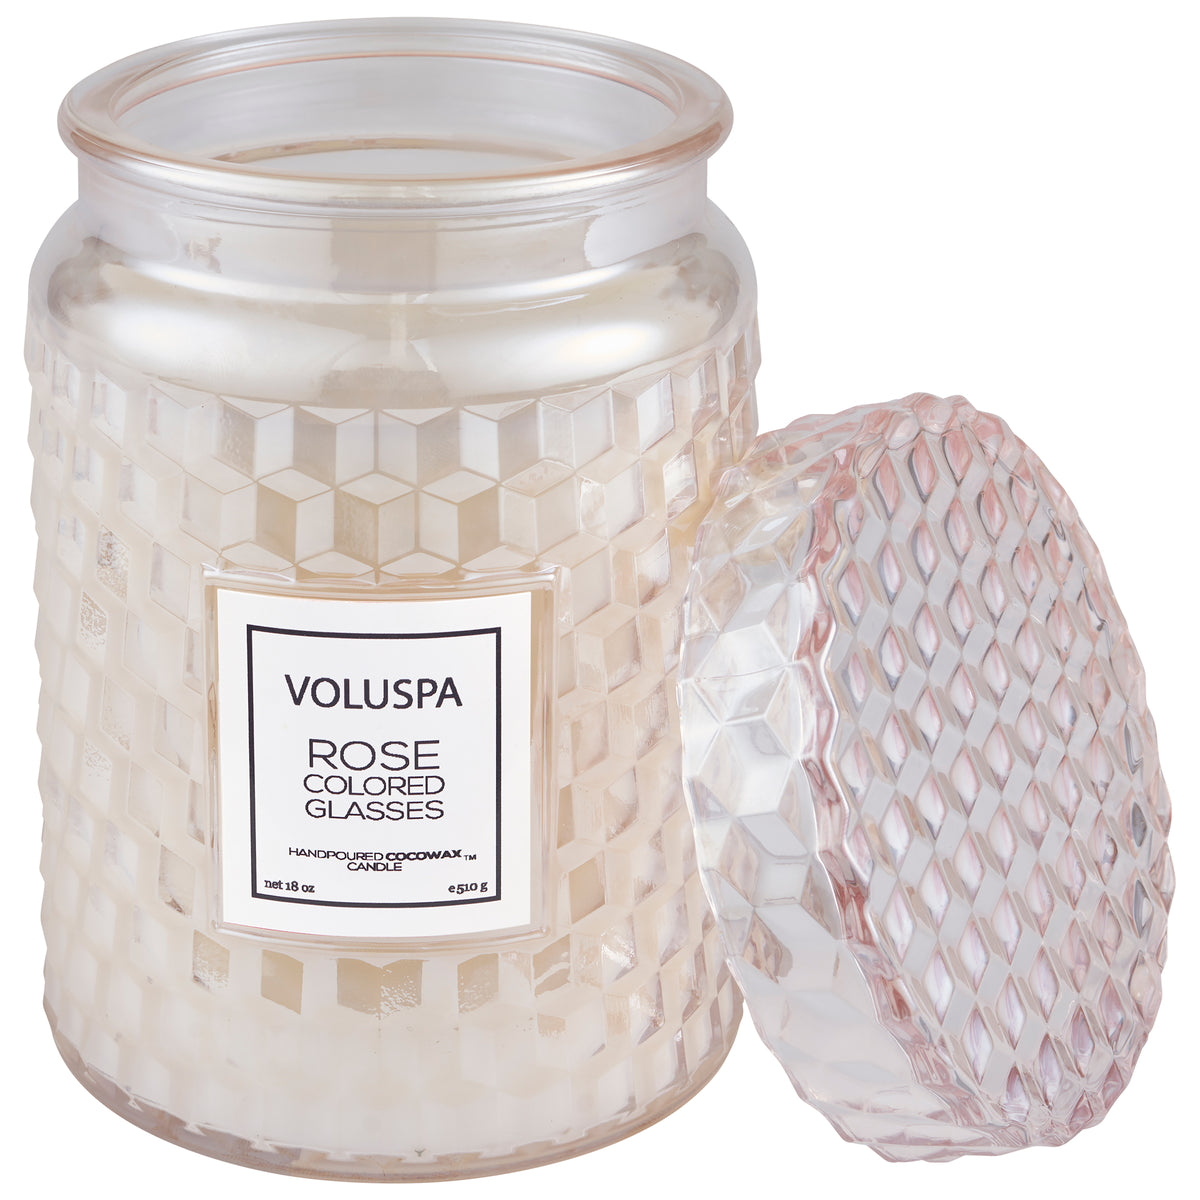 Rose Colored Glasses - Large Jar Candle - 2